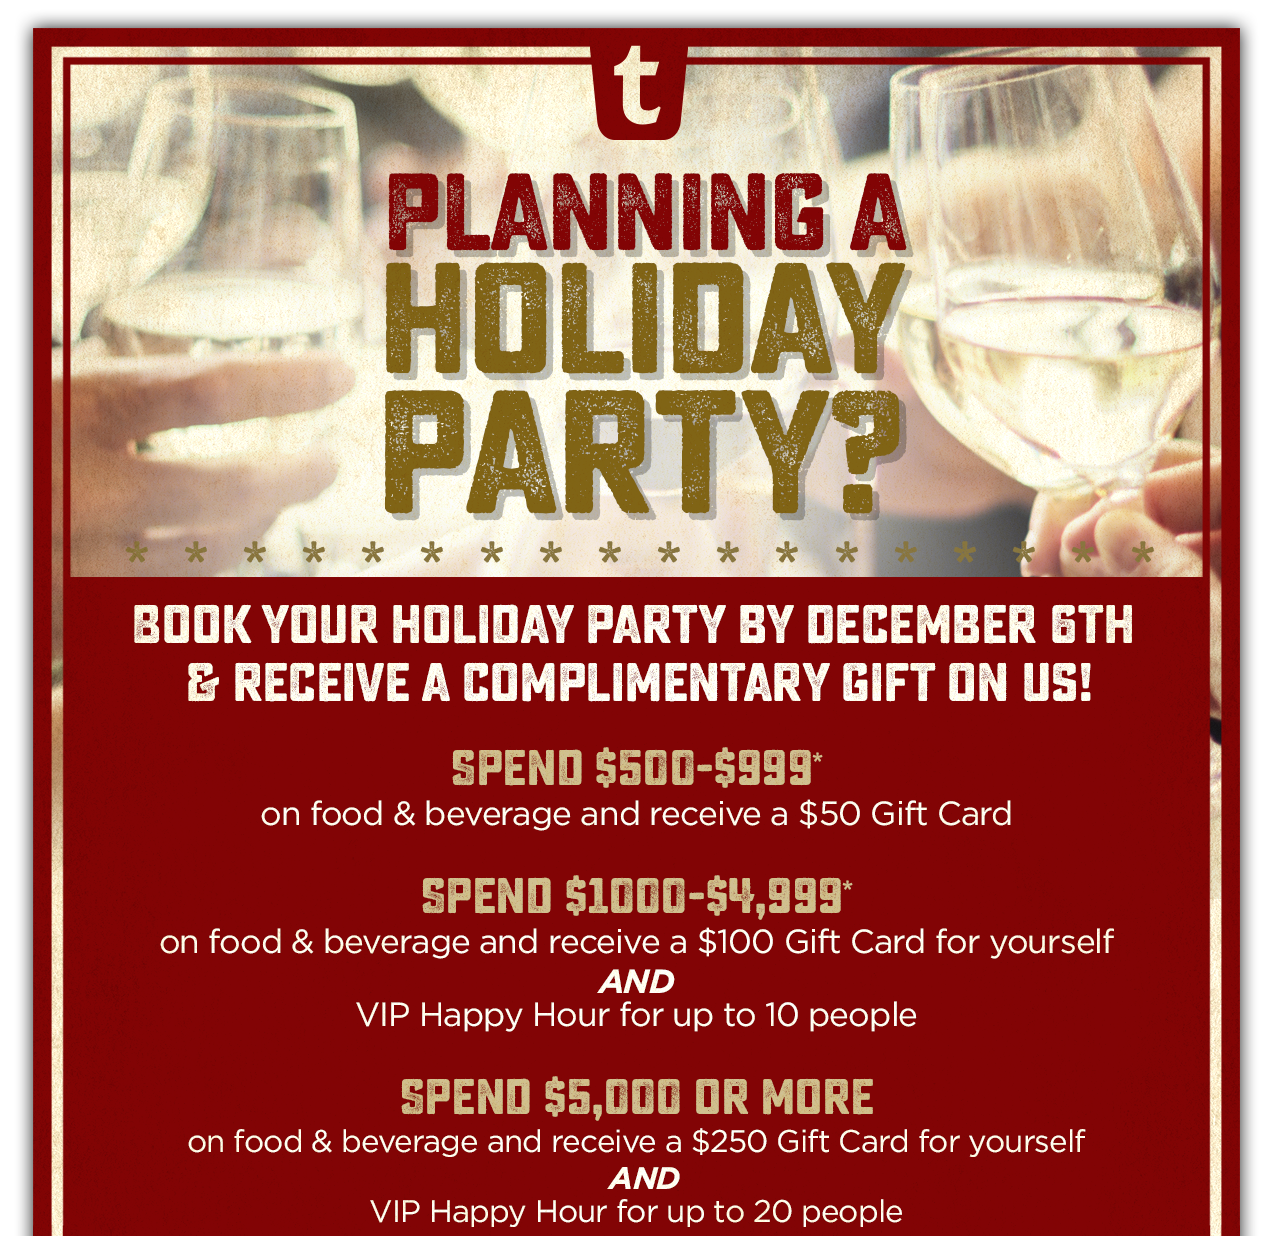 Book your holiday party at any one of our locations!